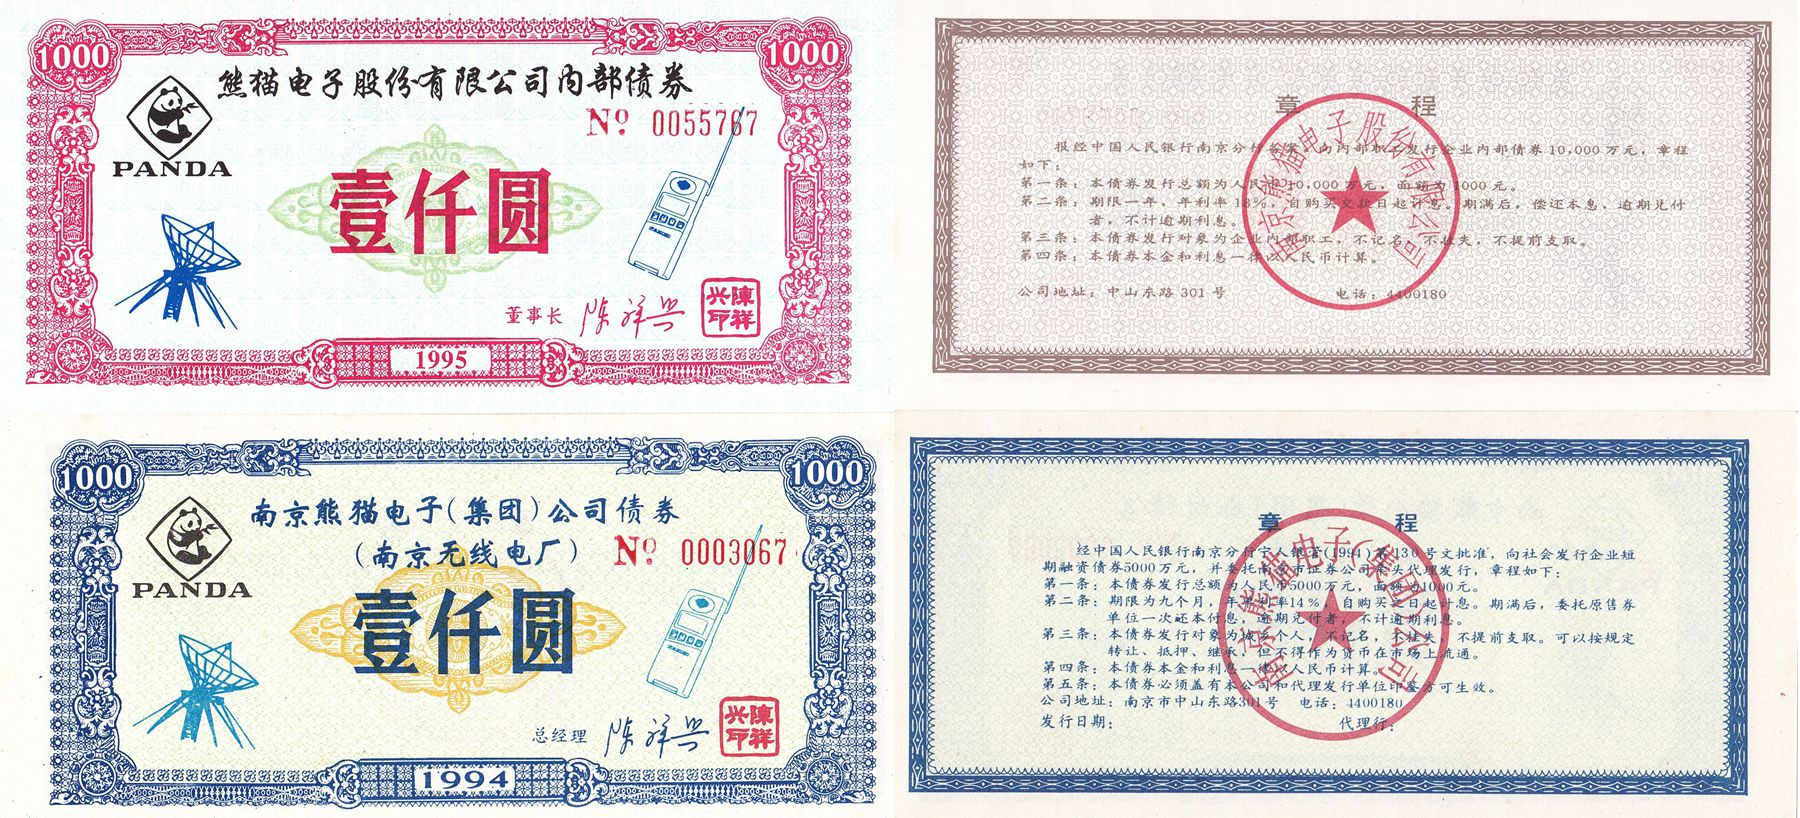 B8022, Panda Electronic Co, 2 pcs Bonds of 1994, China